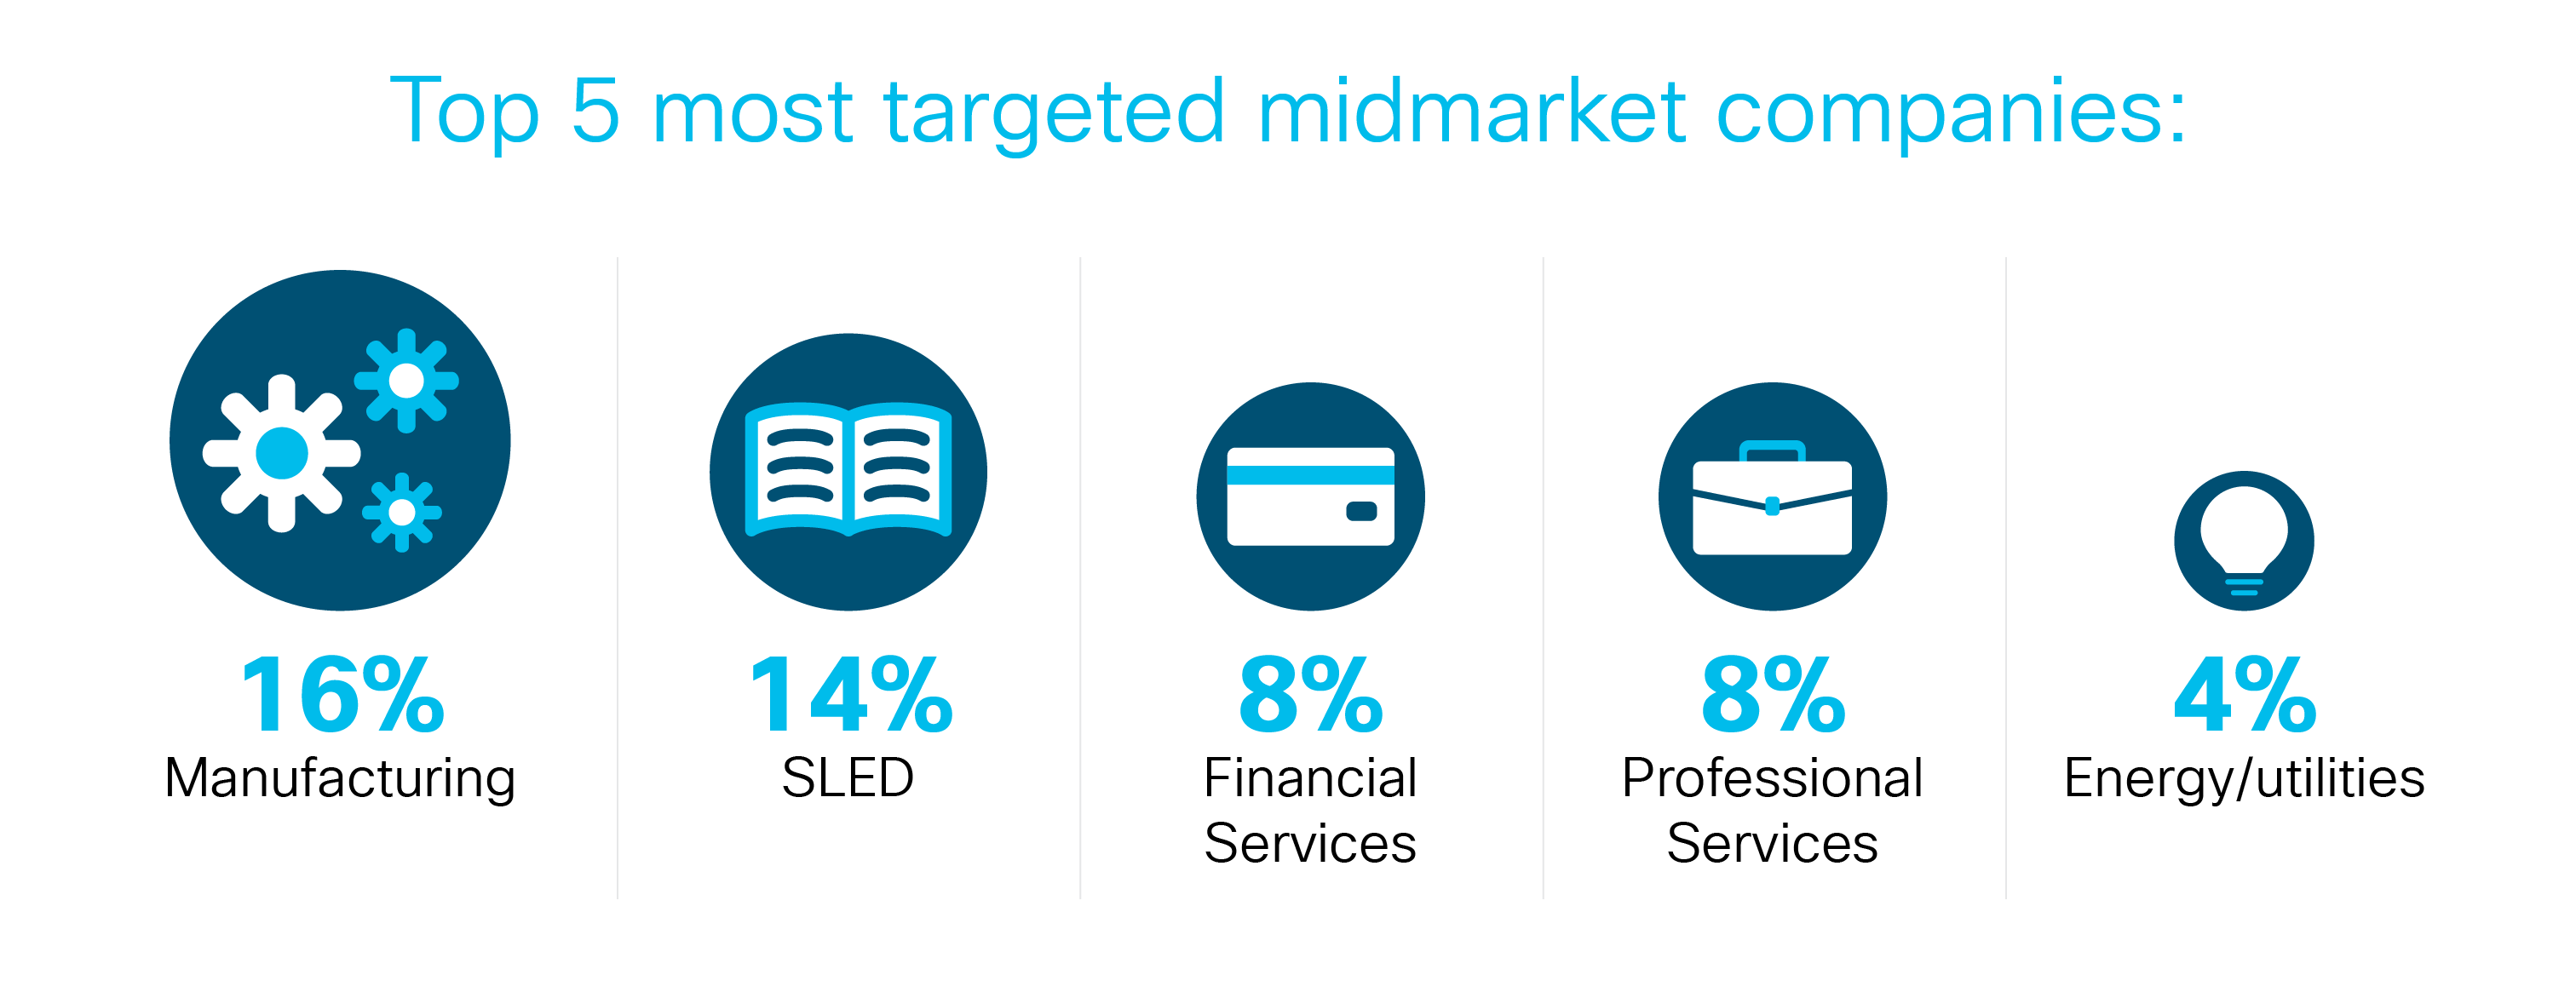 cisco umbrella blog midmarket-malware-mayhem-targeted-industries-and-trends-to-watch